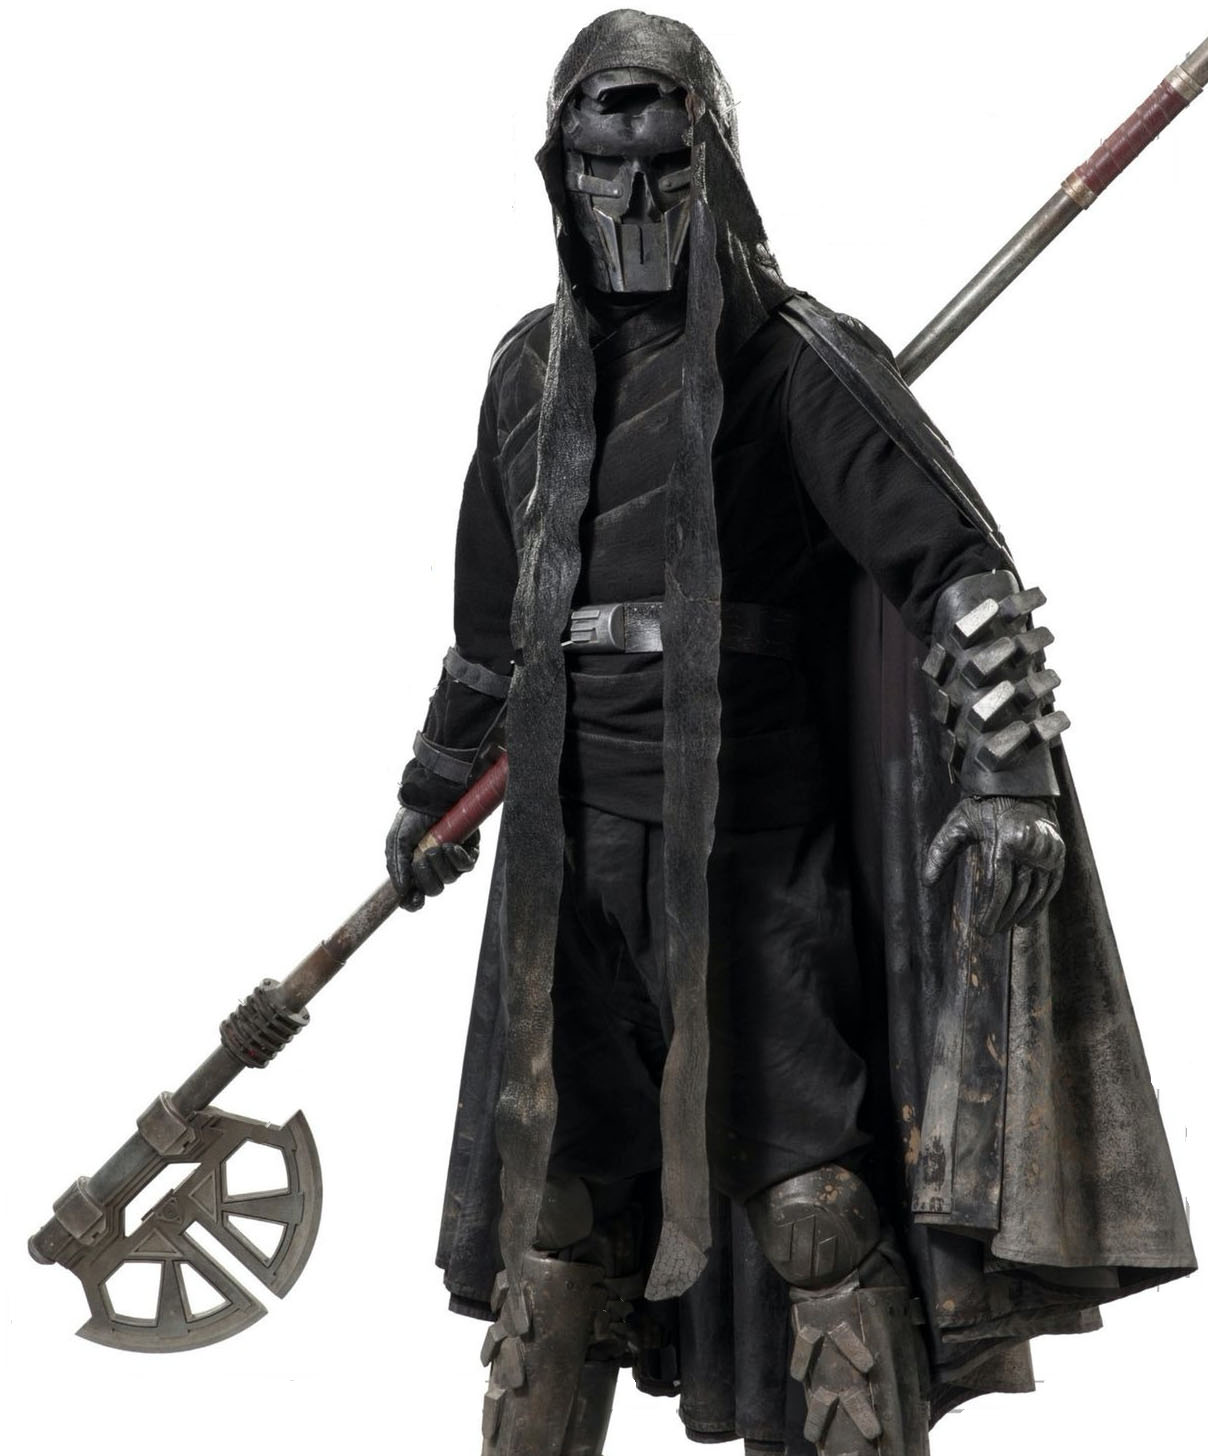 Ap-lek (Knight of Ren)